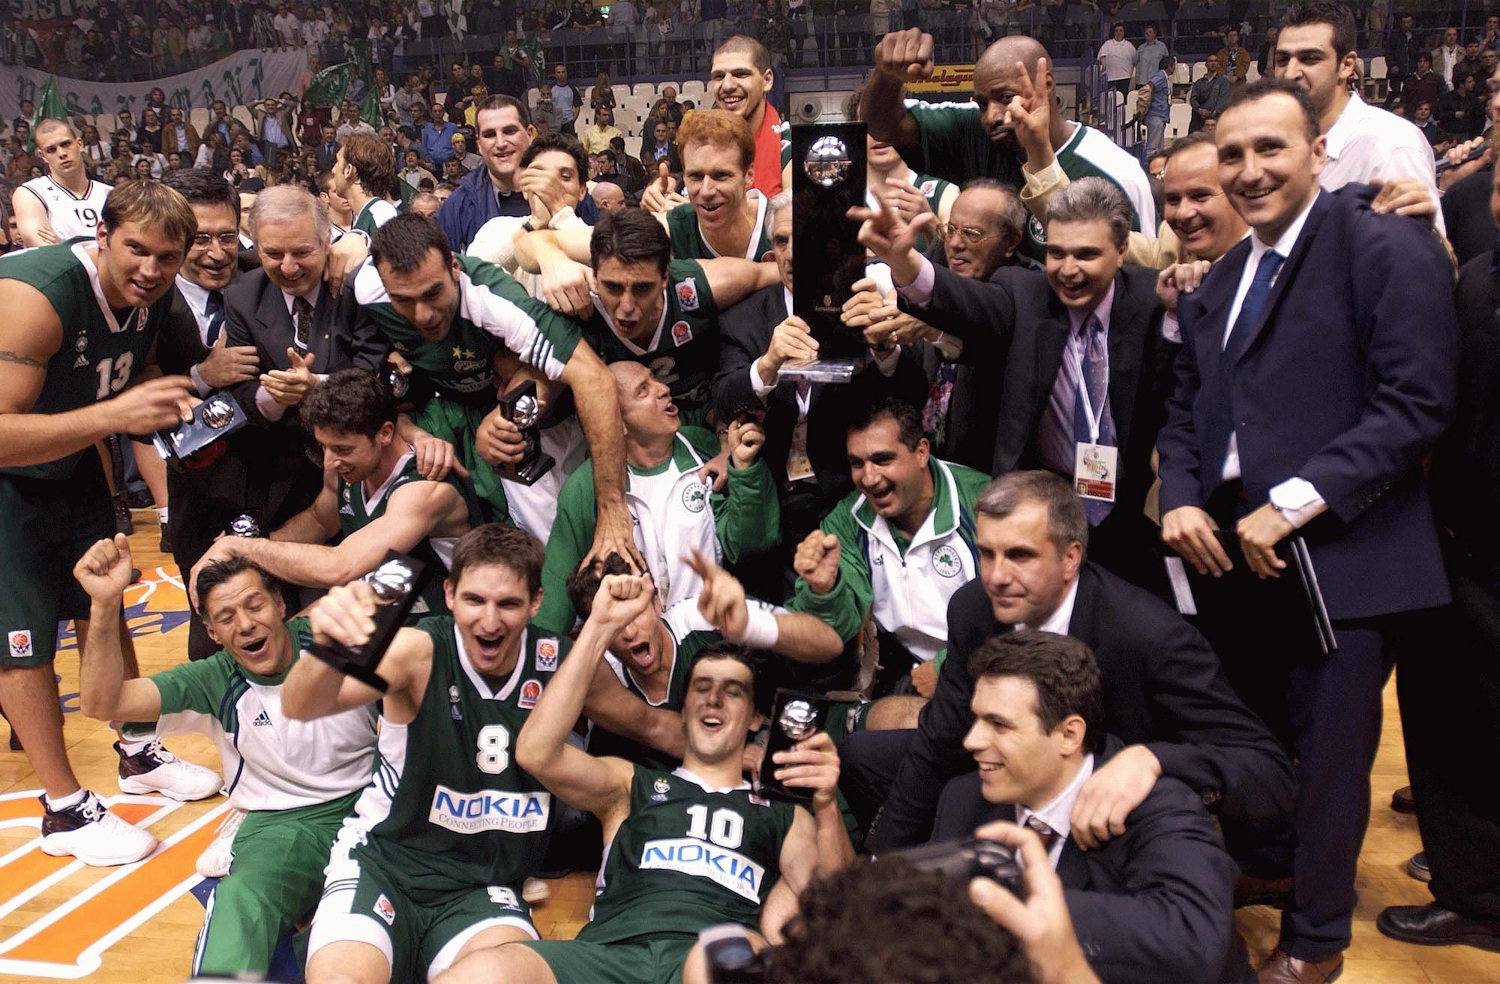 Panathinaikos Athens champ Final Four Bologna 2002 - EB01